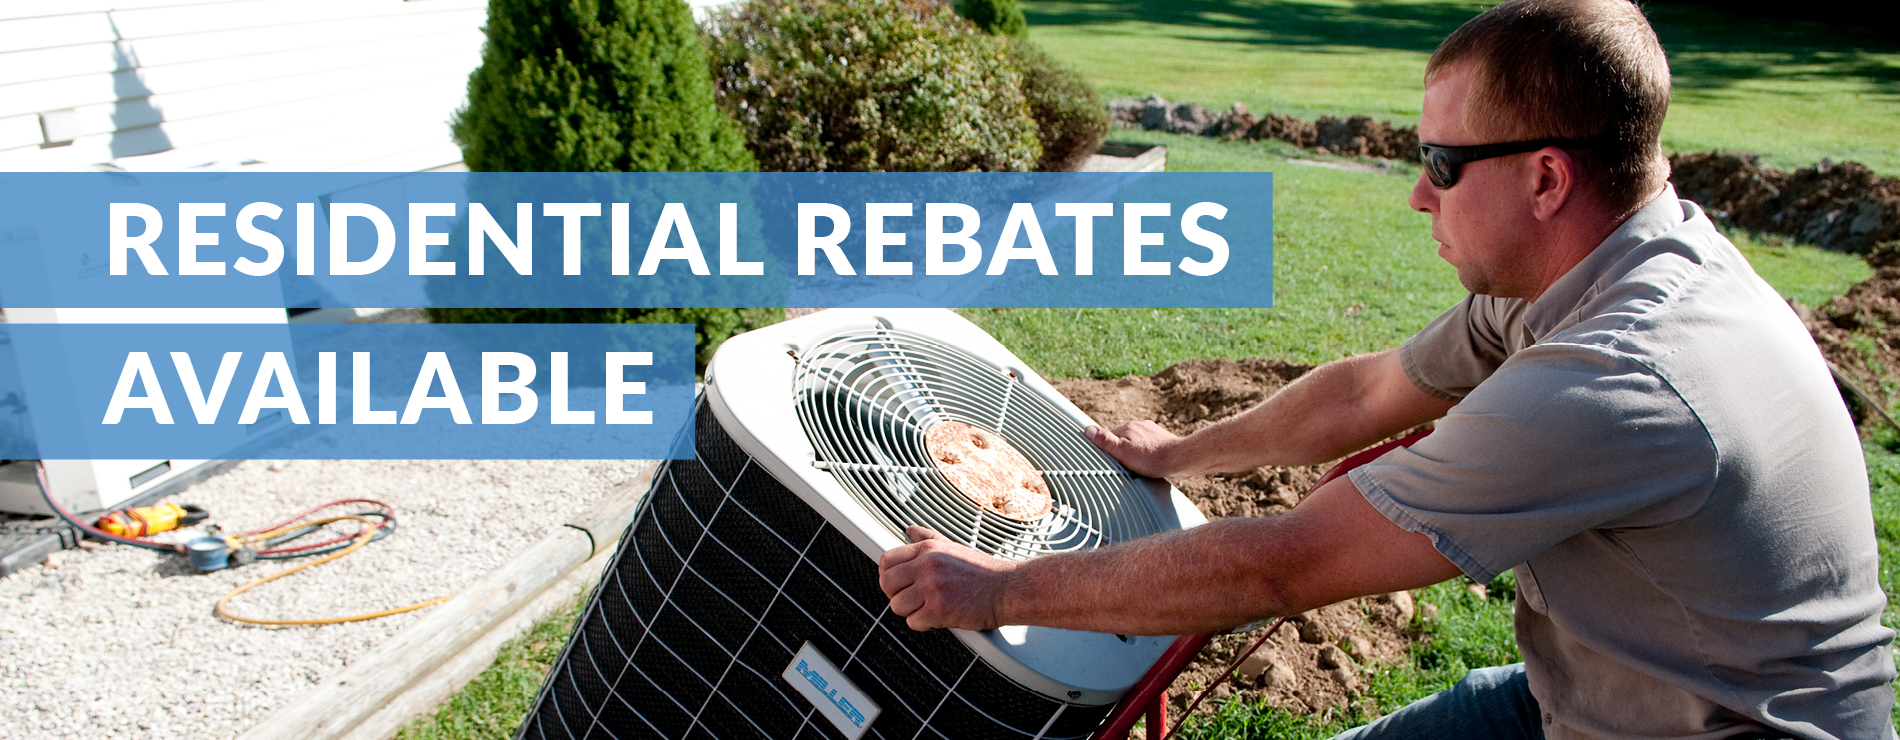 Residential rebates available